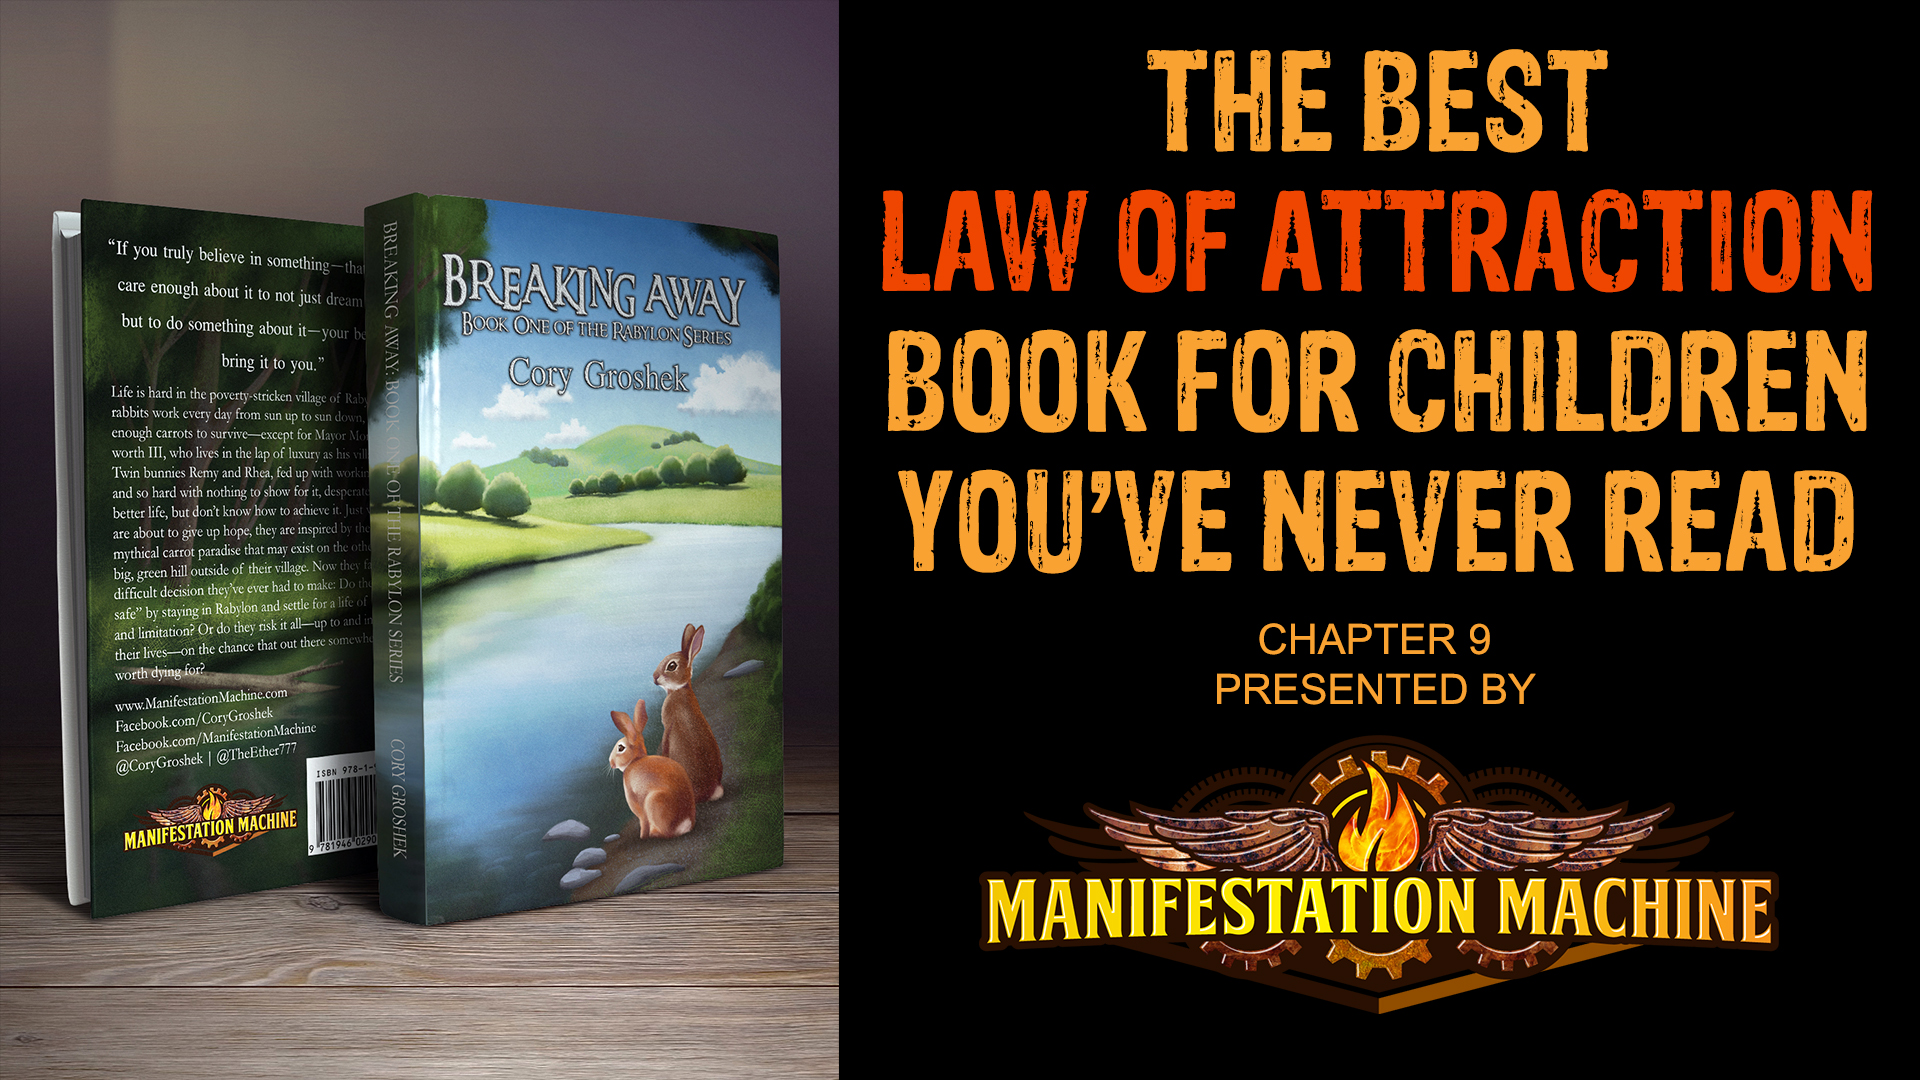 The Best Law of Attraction Book for Children You've Never Read (Chapter 9)